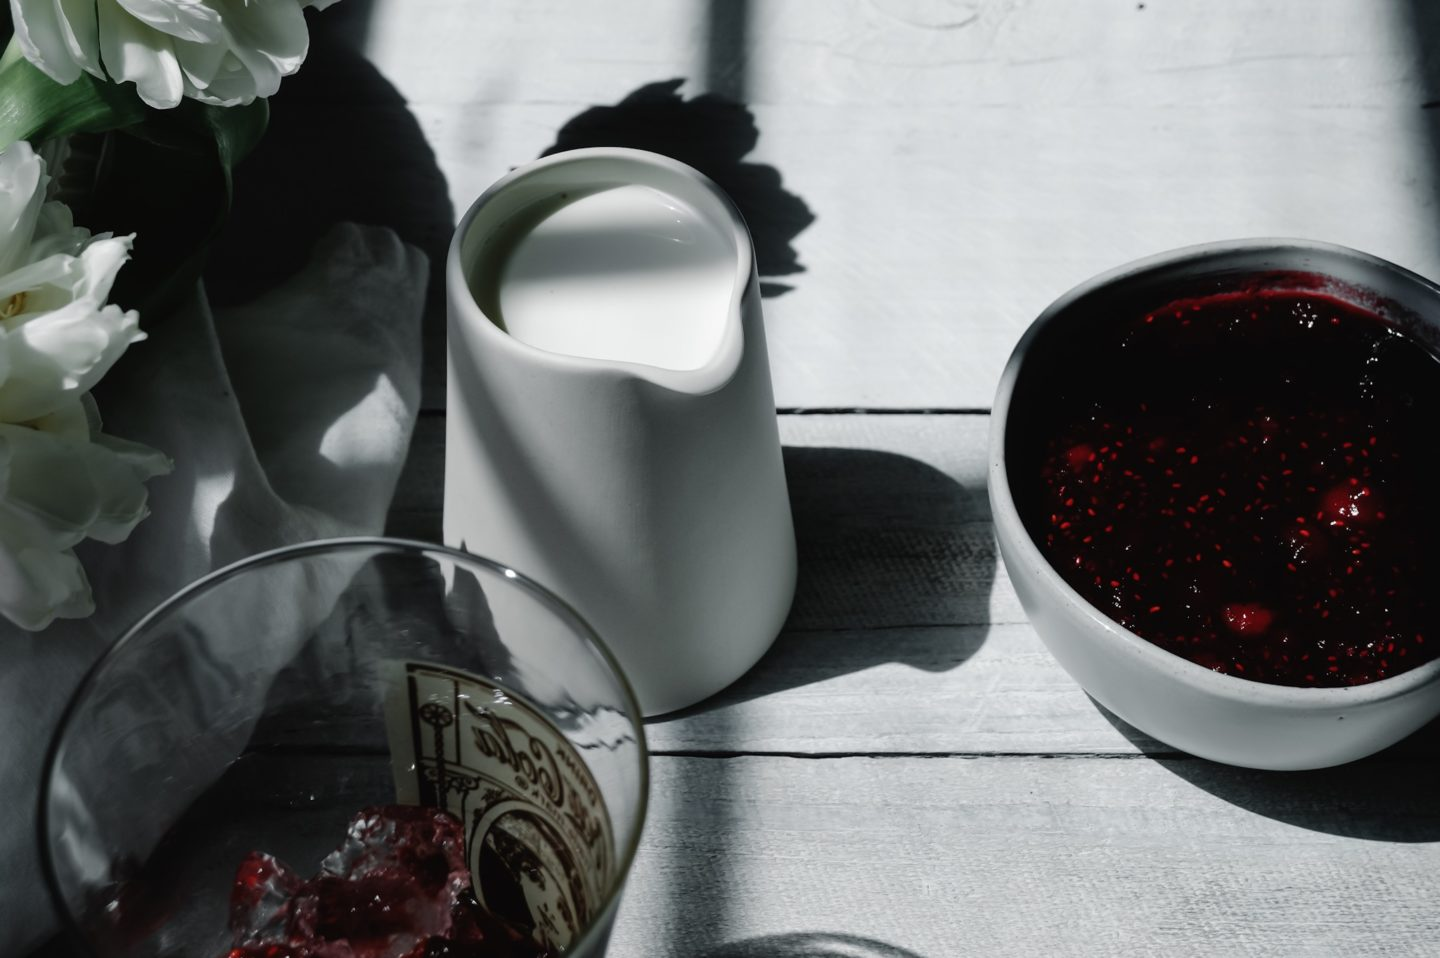 A delightfully tiny creamer sits by a bowl full of jam ready to be poured over our French soda.